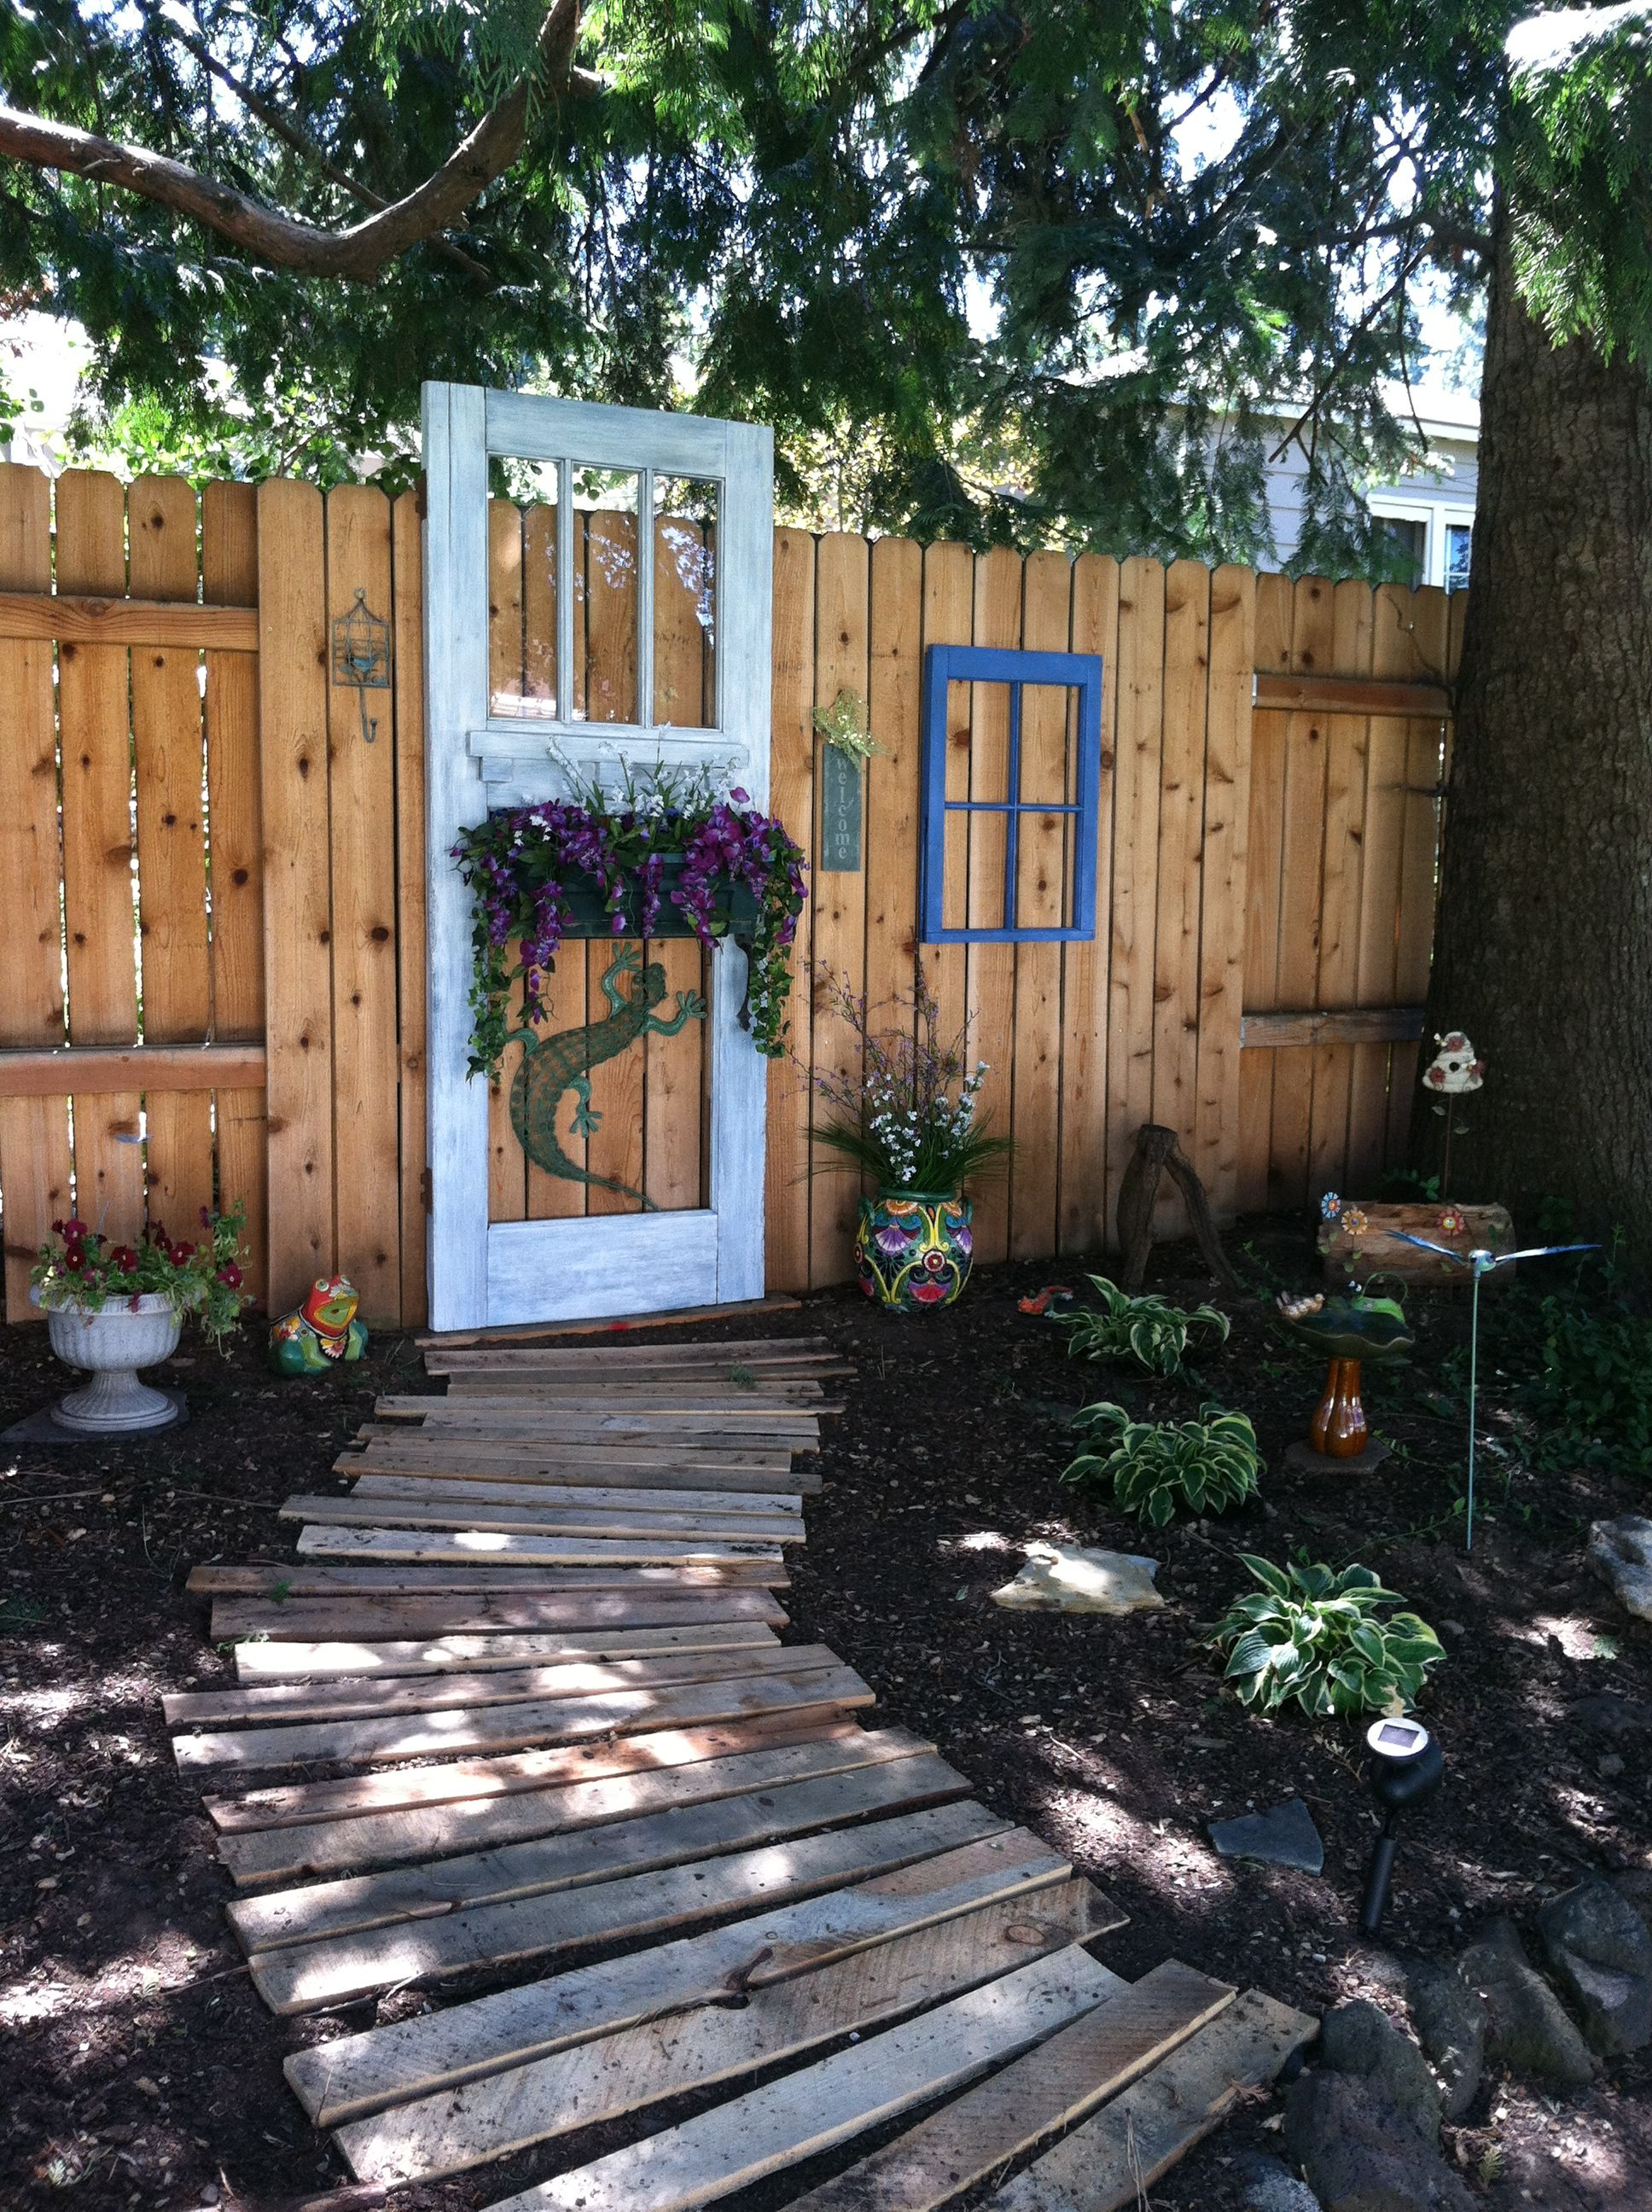 our summer yard art project repurposed old door and window frame